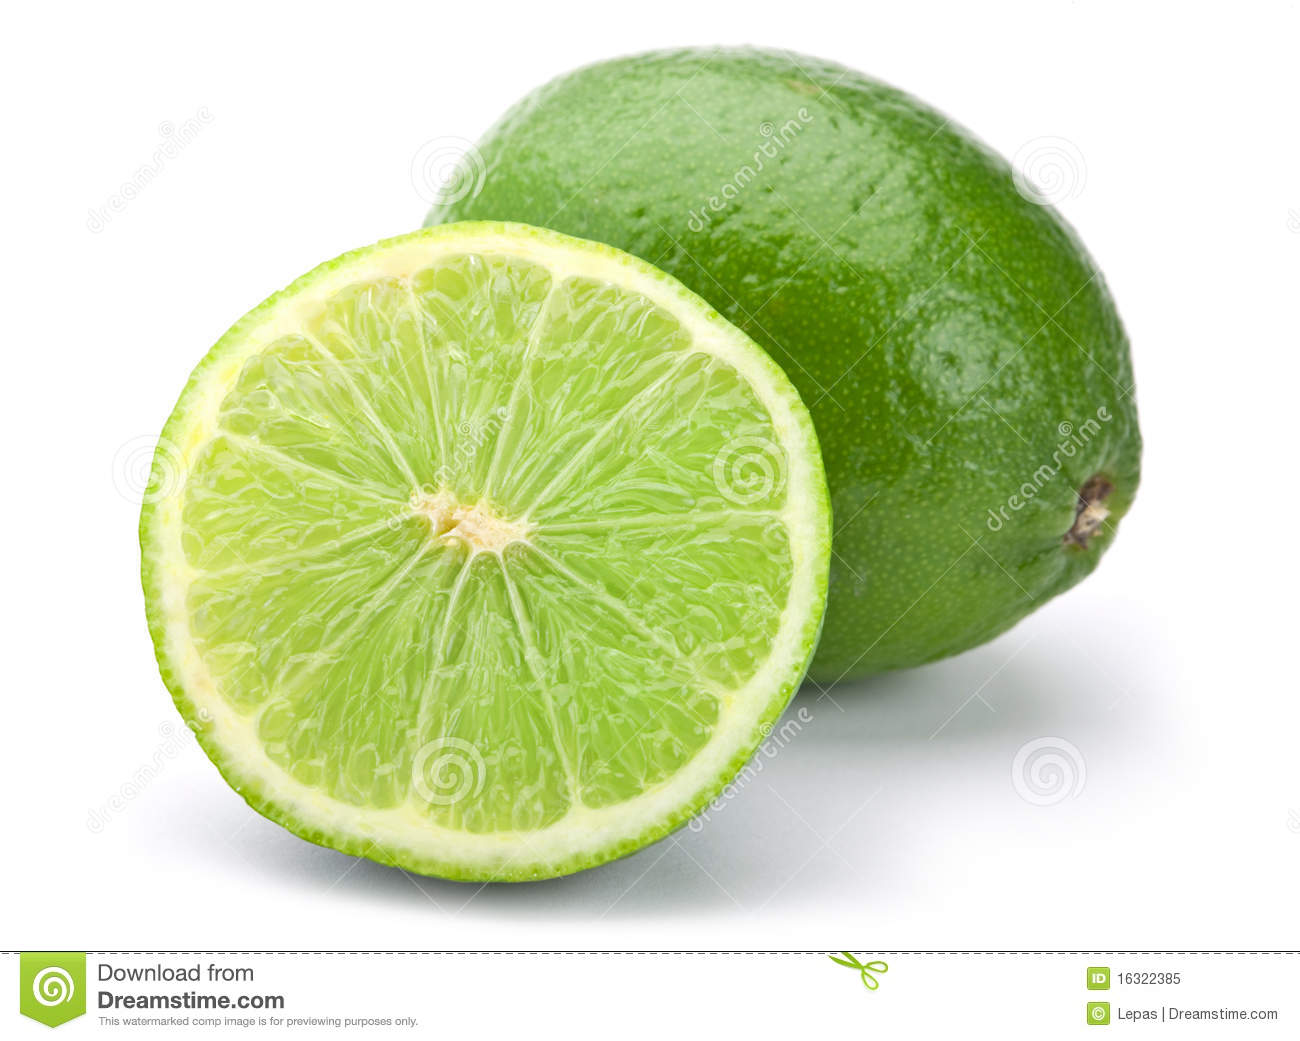 Lime Citrus Fruit Royalty Free Stock Photo - Image: 16322385